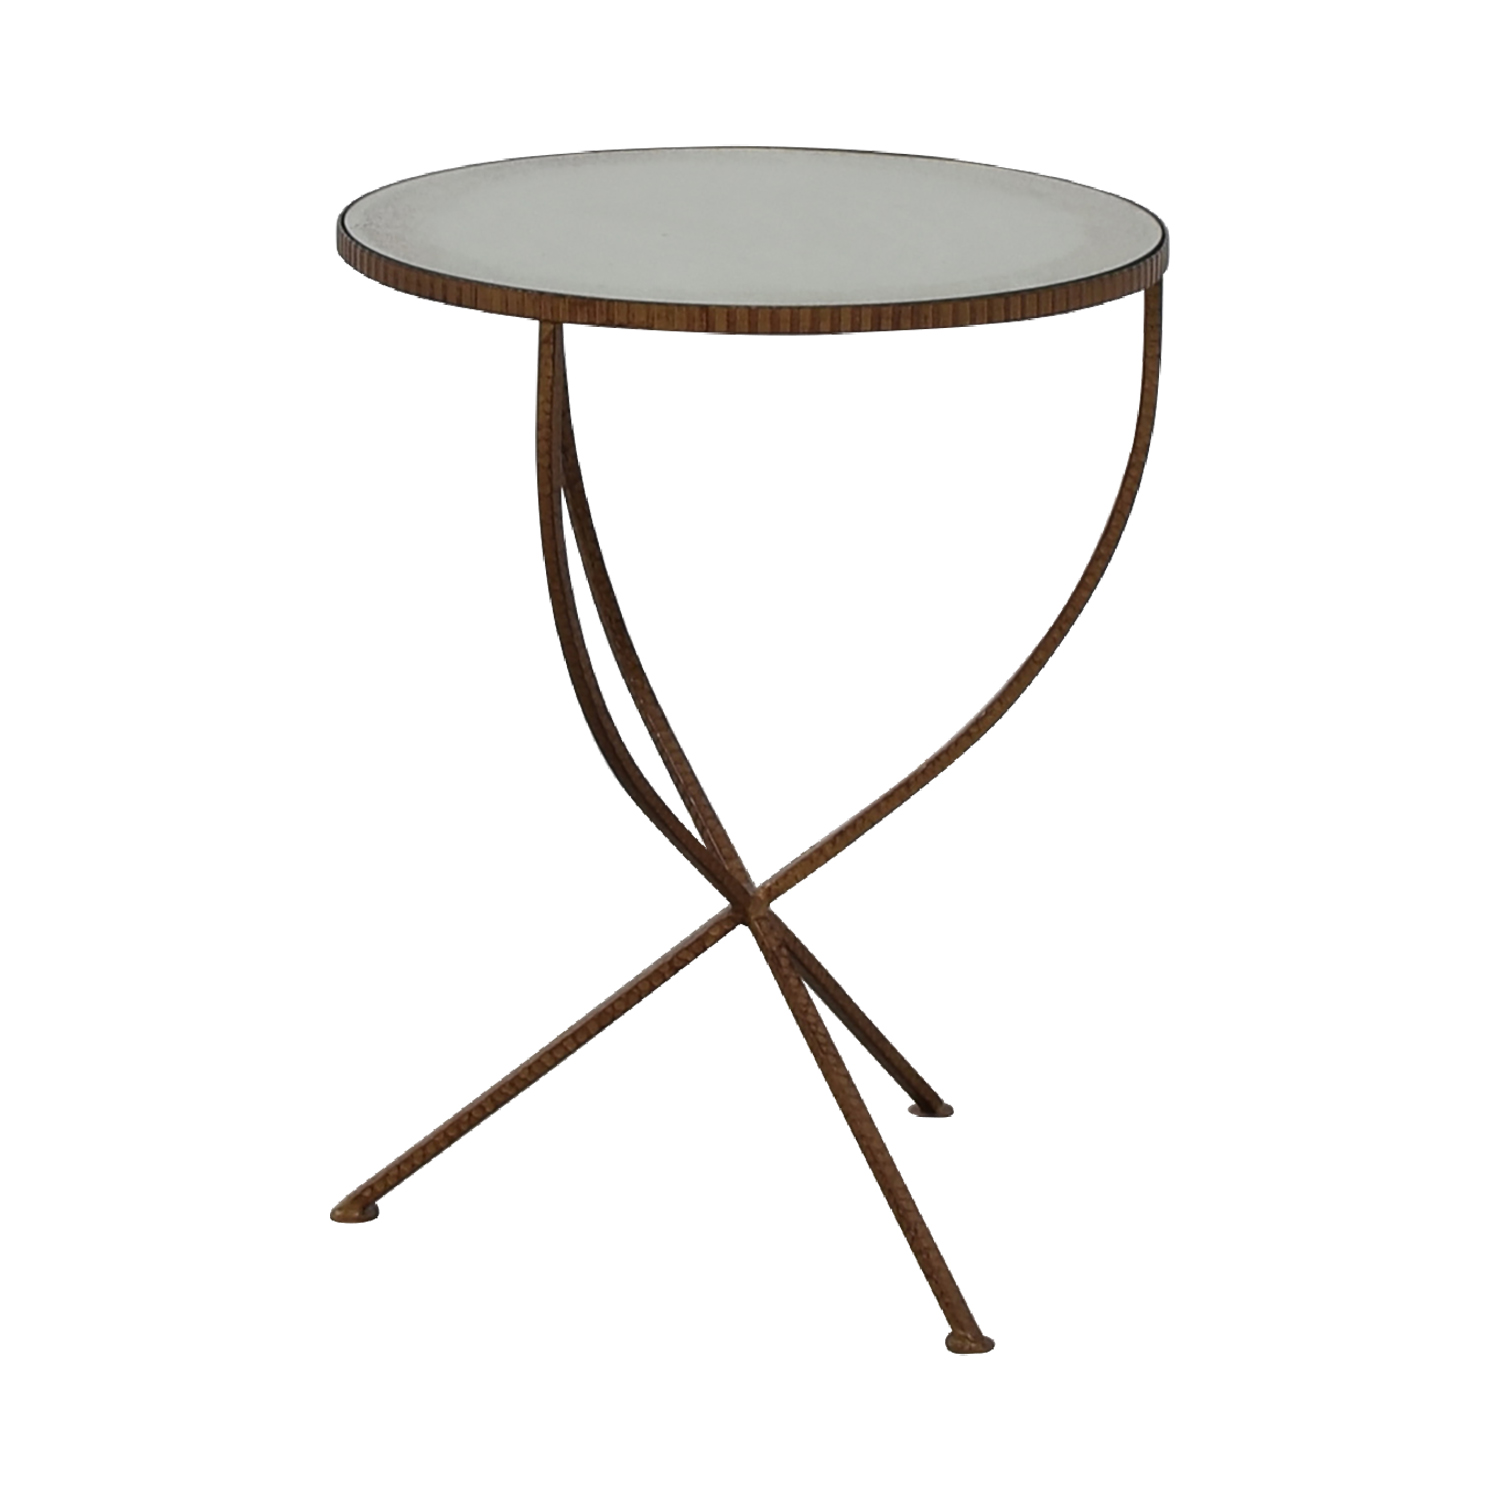 off crate barrel jules accent table tables used and small pottery barn trestle dining mid century lamp pendant style kitchen round lucite side furniture for spaces pieces simple